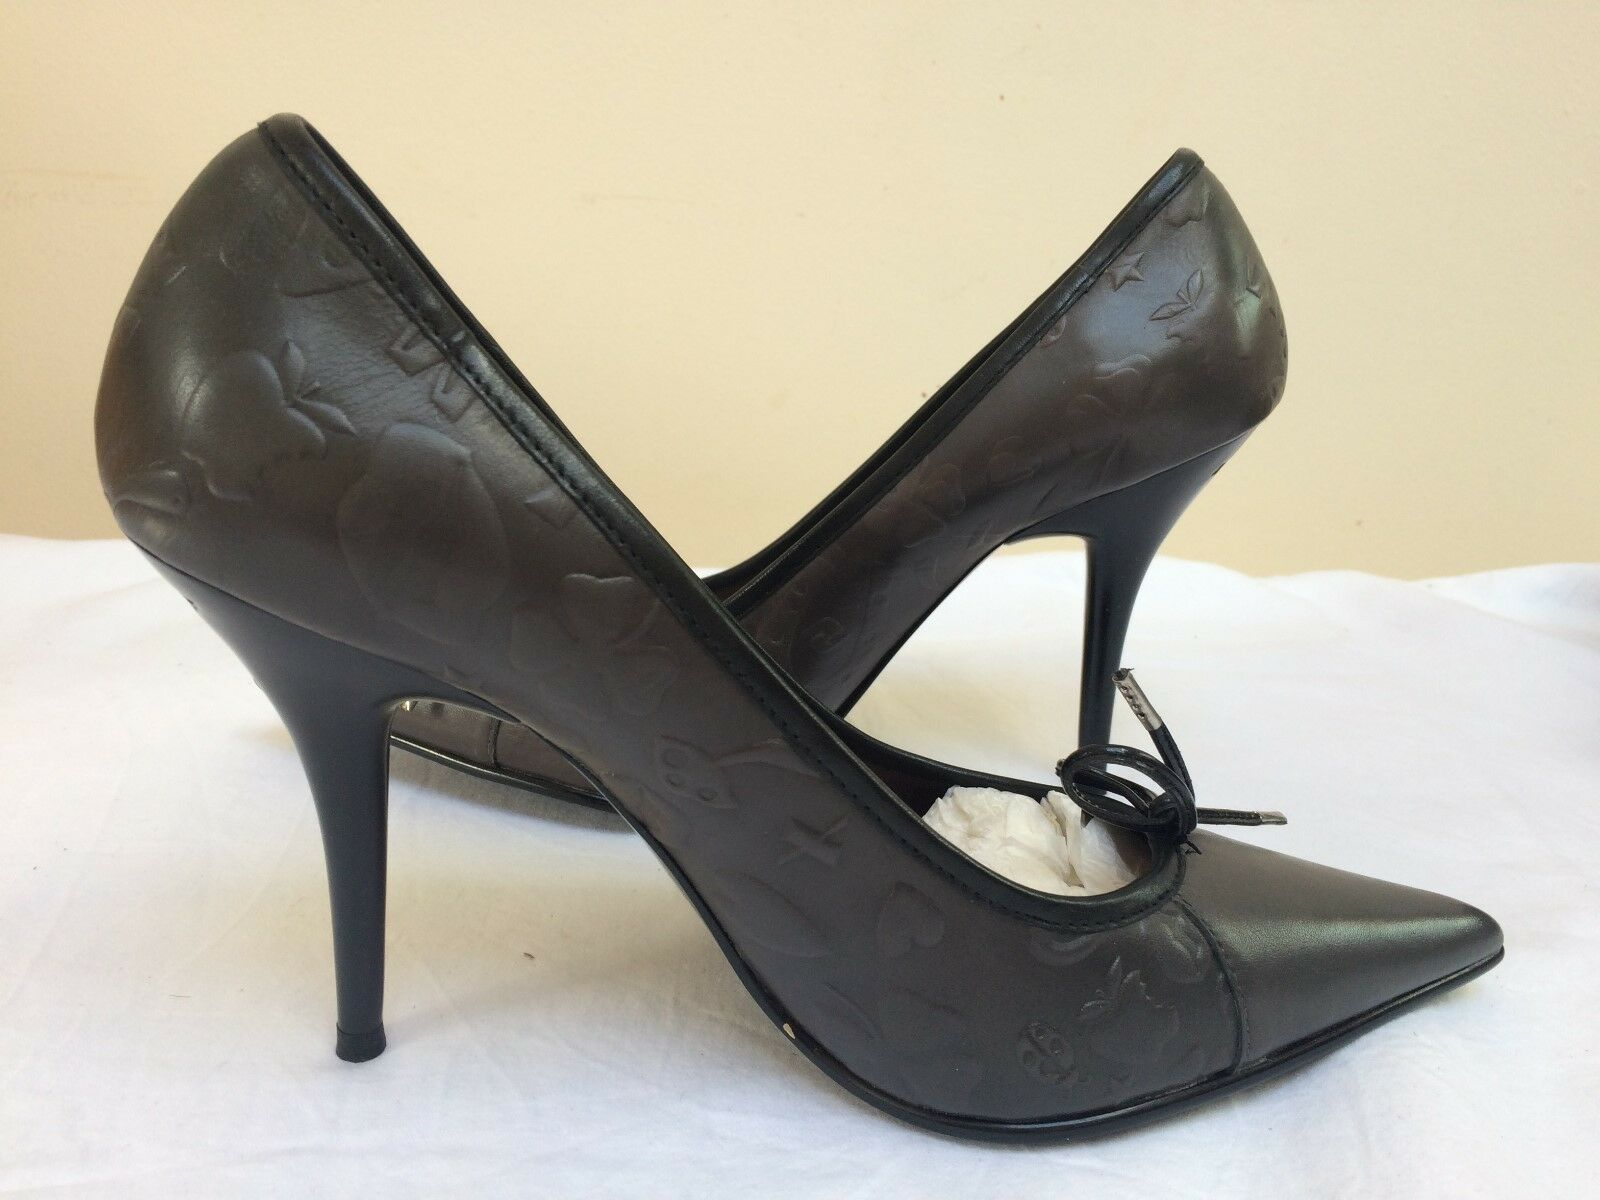 BeautifuLadies shoes heels MISS SIXTY size 6 39 BNWB